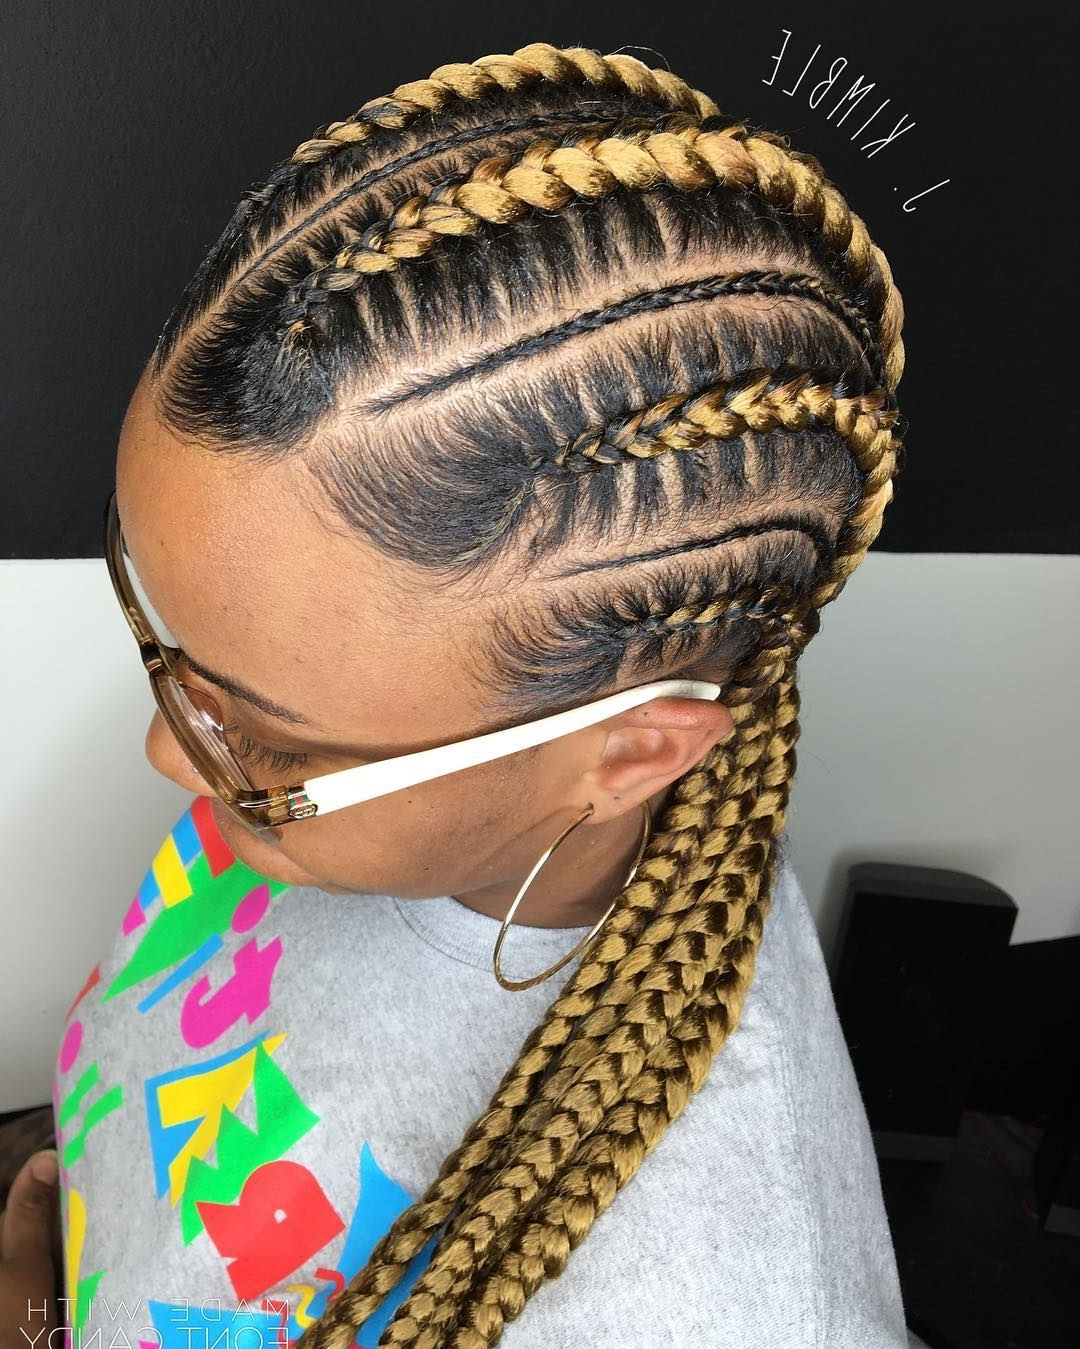 70 Best Black Braided Hairstyles That Turn Heads In 2018 Throughout Most Current Black Braided Hairstyles (View 4 of 15)